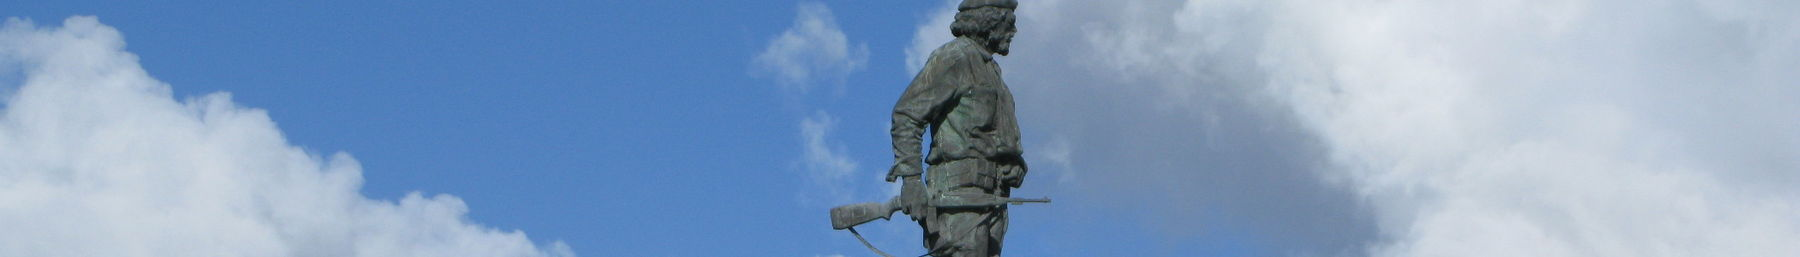 The Che Monument in Santa Clara